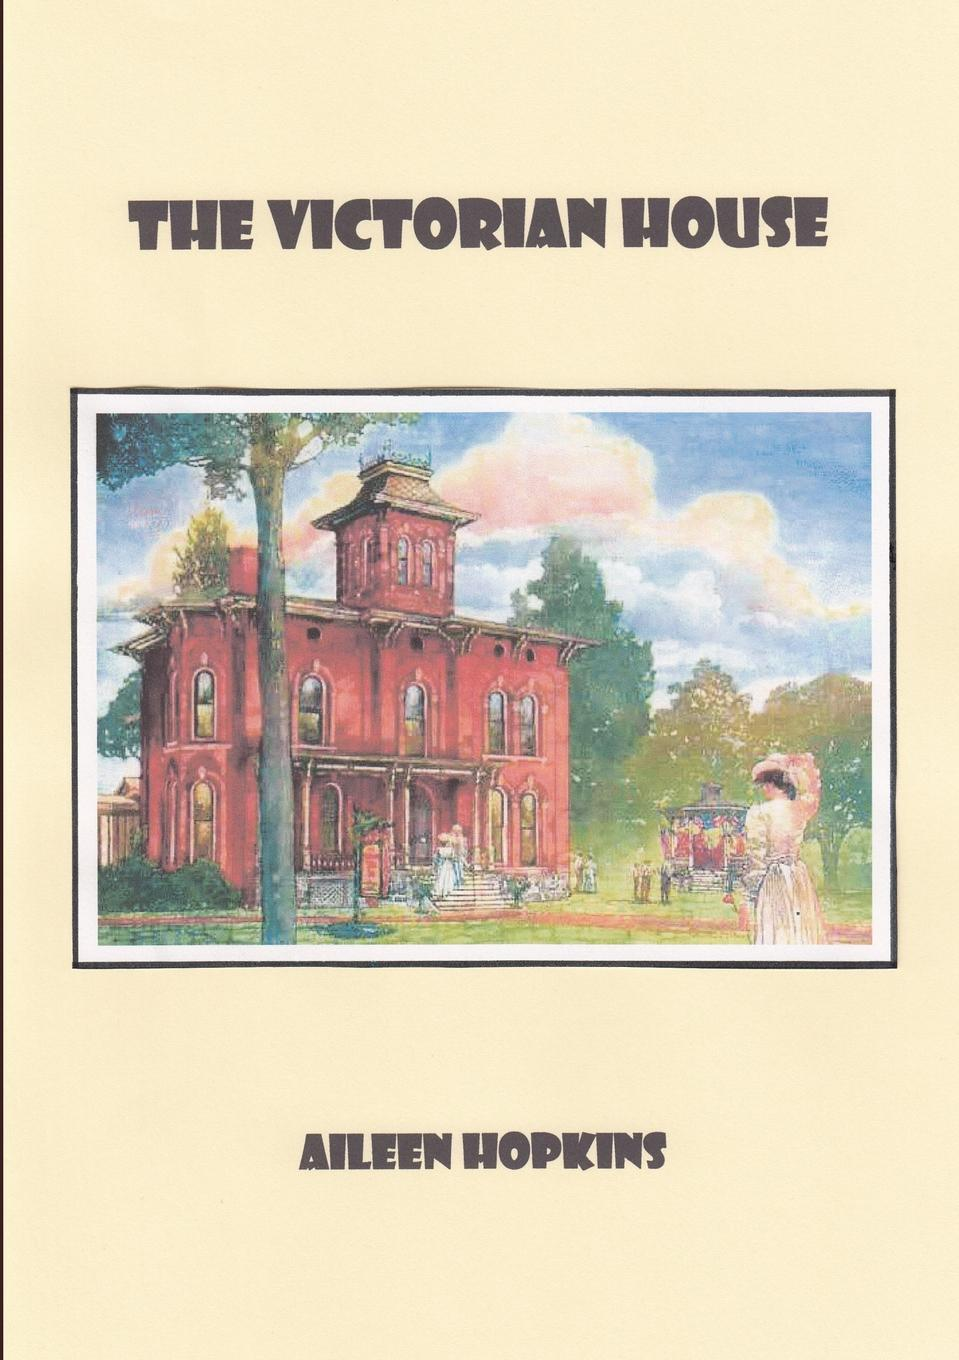 aileen hopkins THE VICTORIAN HOUSE цены